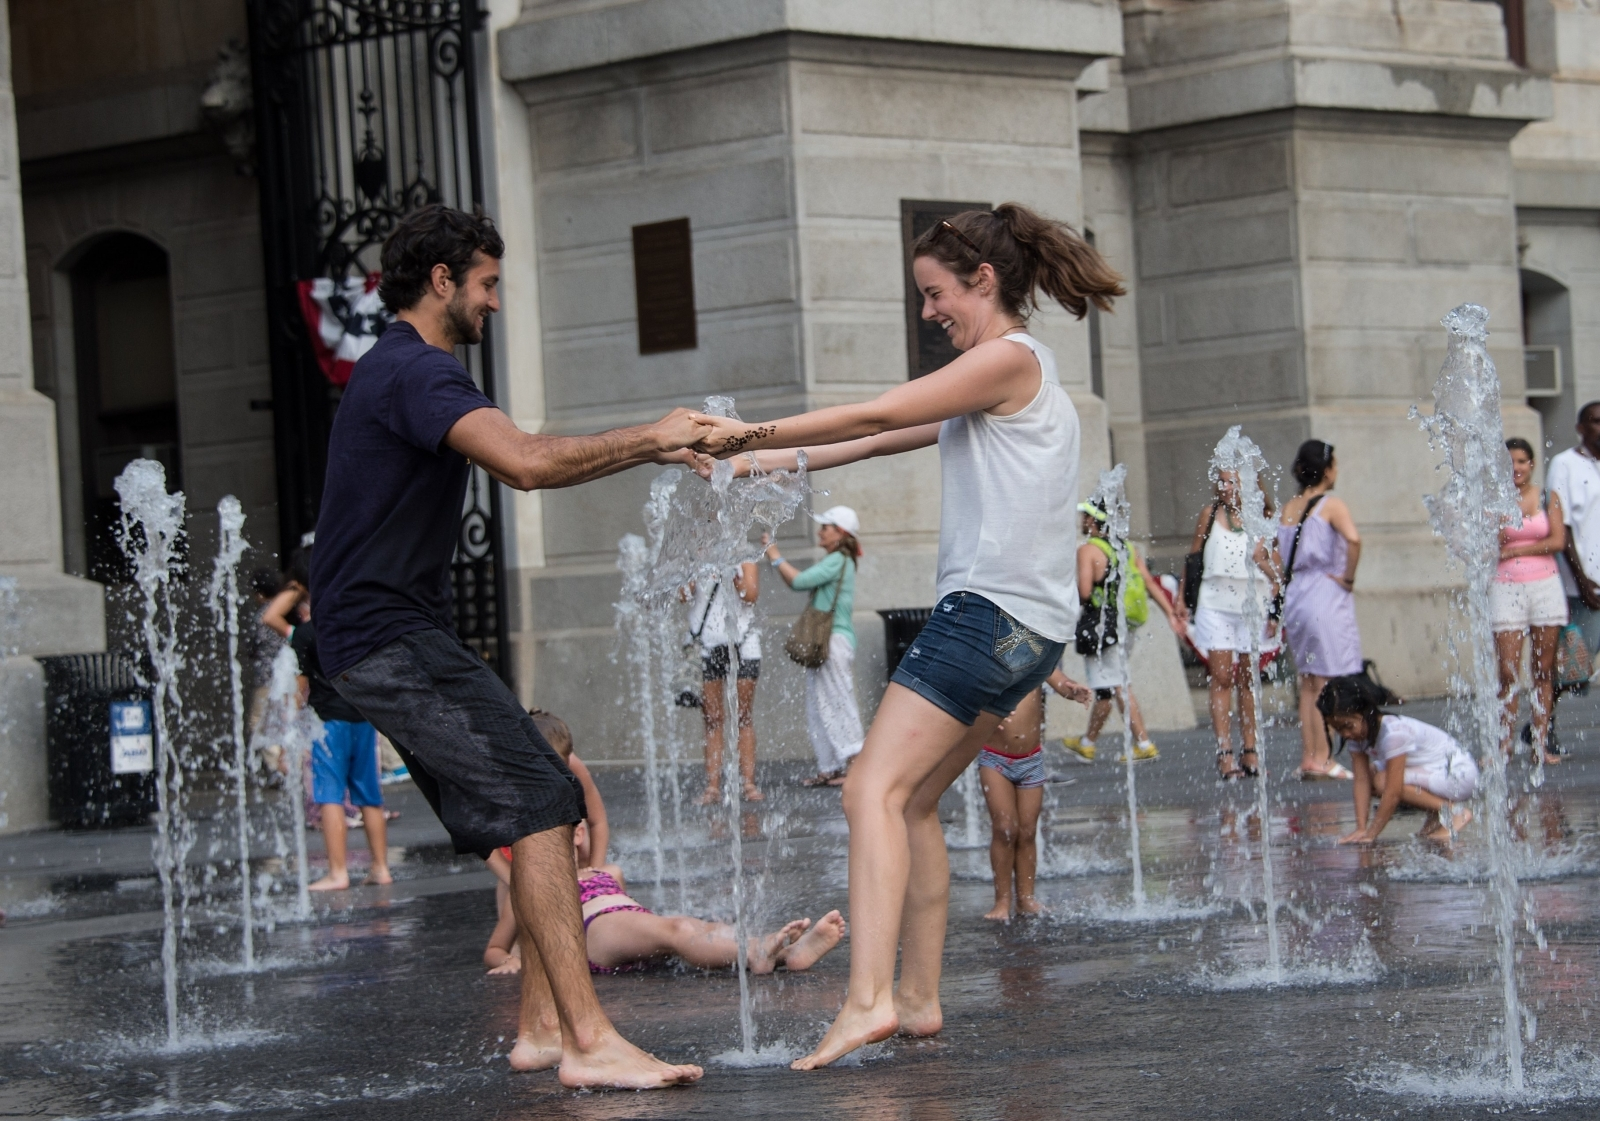 A couple plays in a fountain in front of City Hall in Philadelphia, but dating relationships across the US have become more complicated based on views around US President Donald Trump